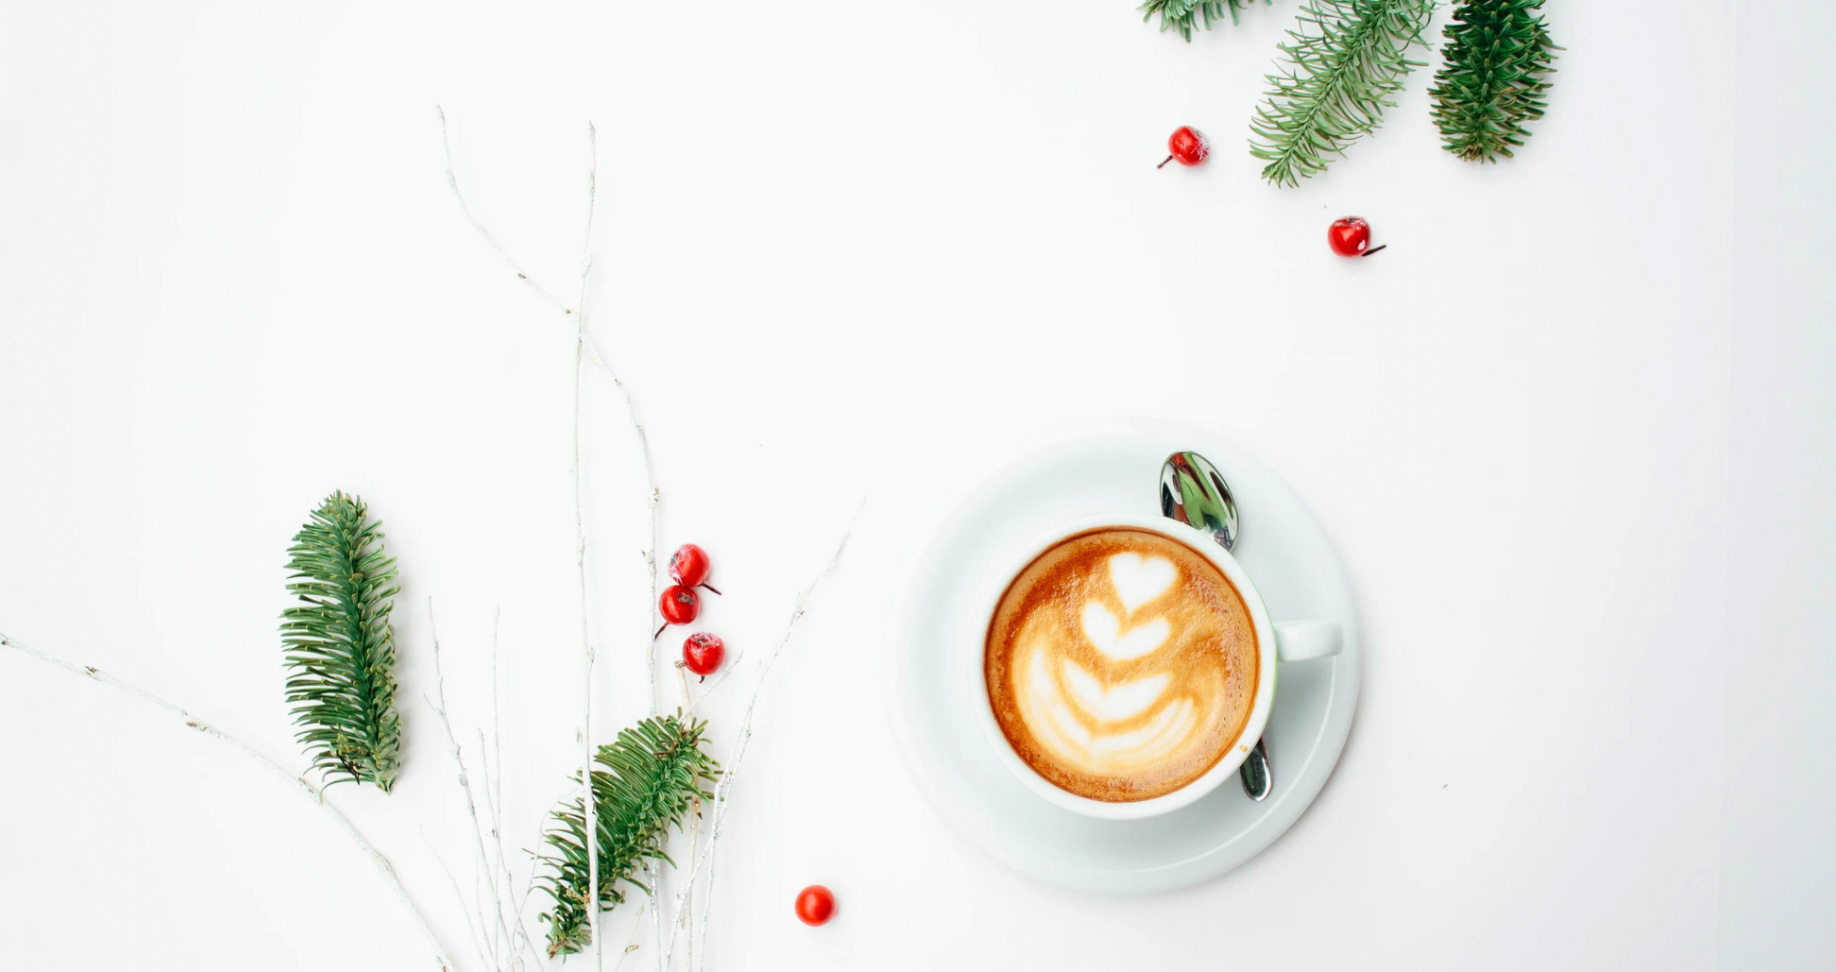 Cup of coffee and holiday decorations. unsplash - Toa Heftiba